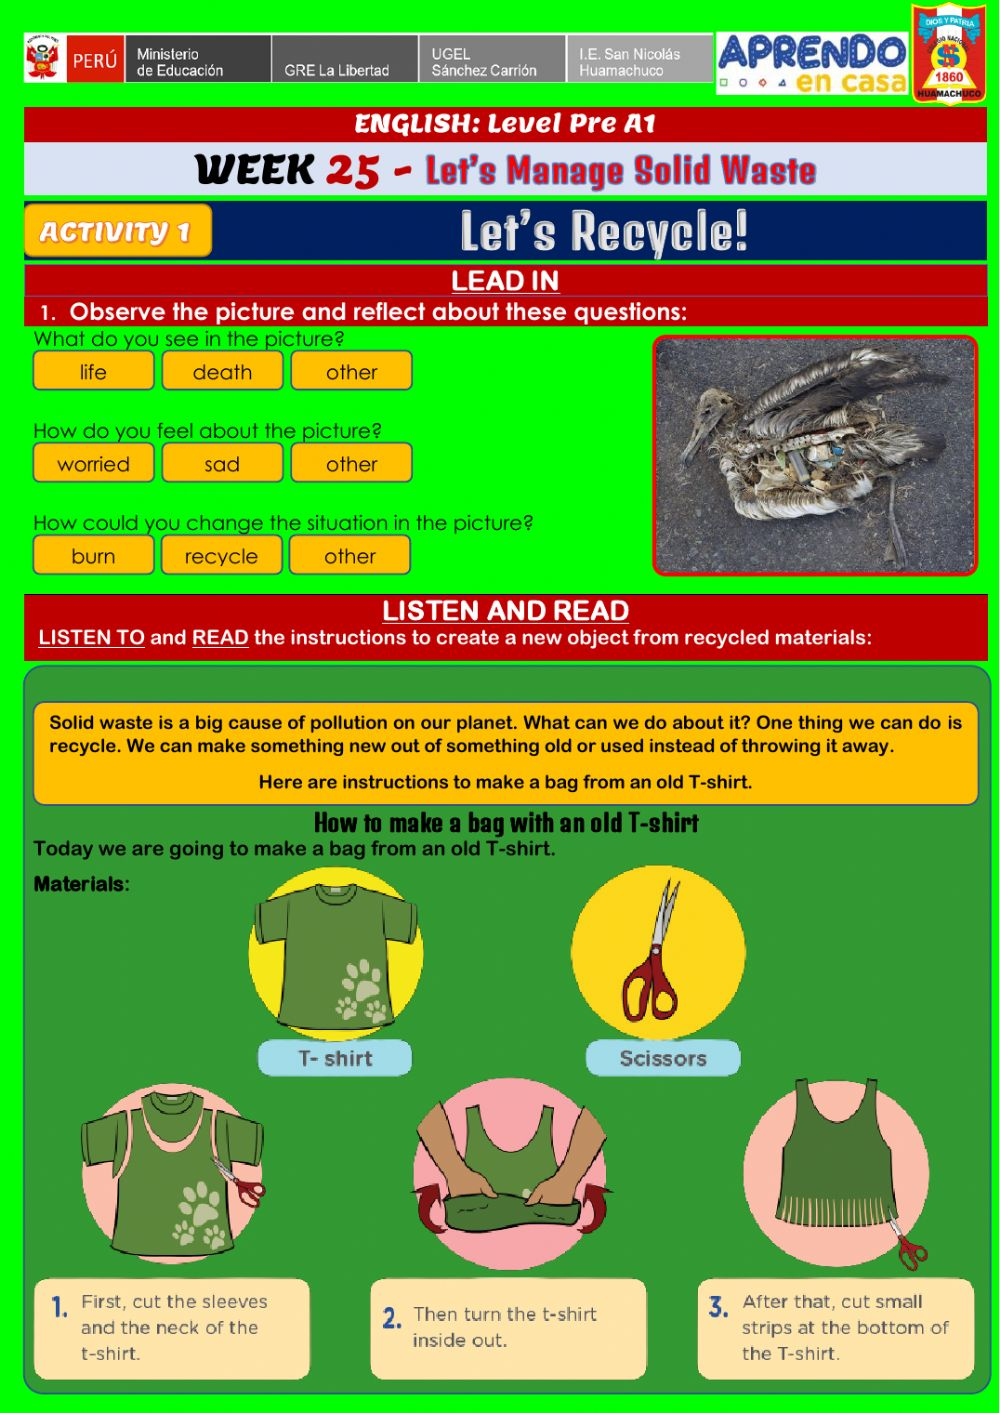 medium resolution of Let's Manage Solid Waste - Let's Recycle! worksheet